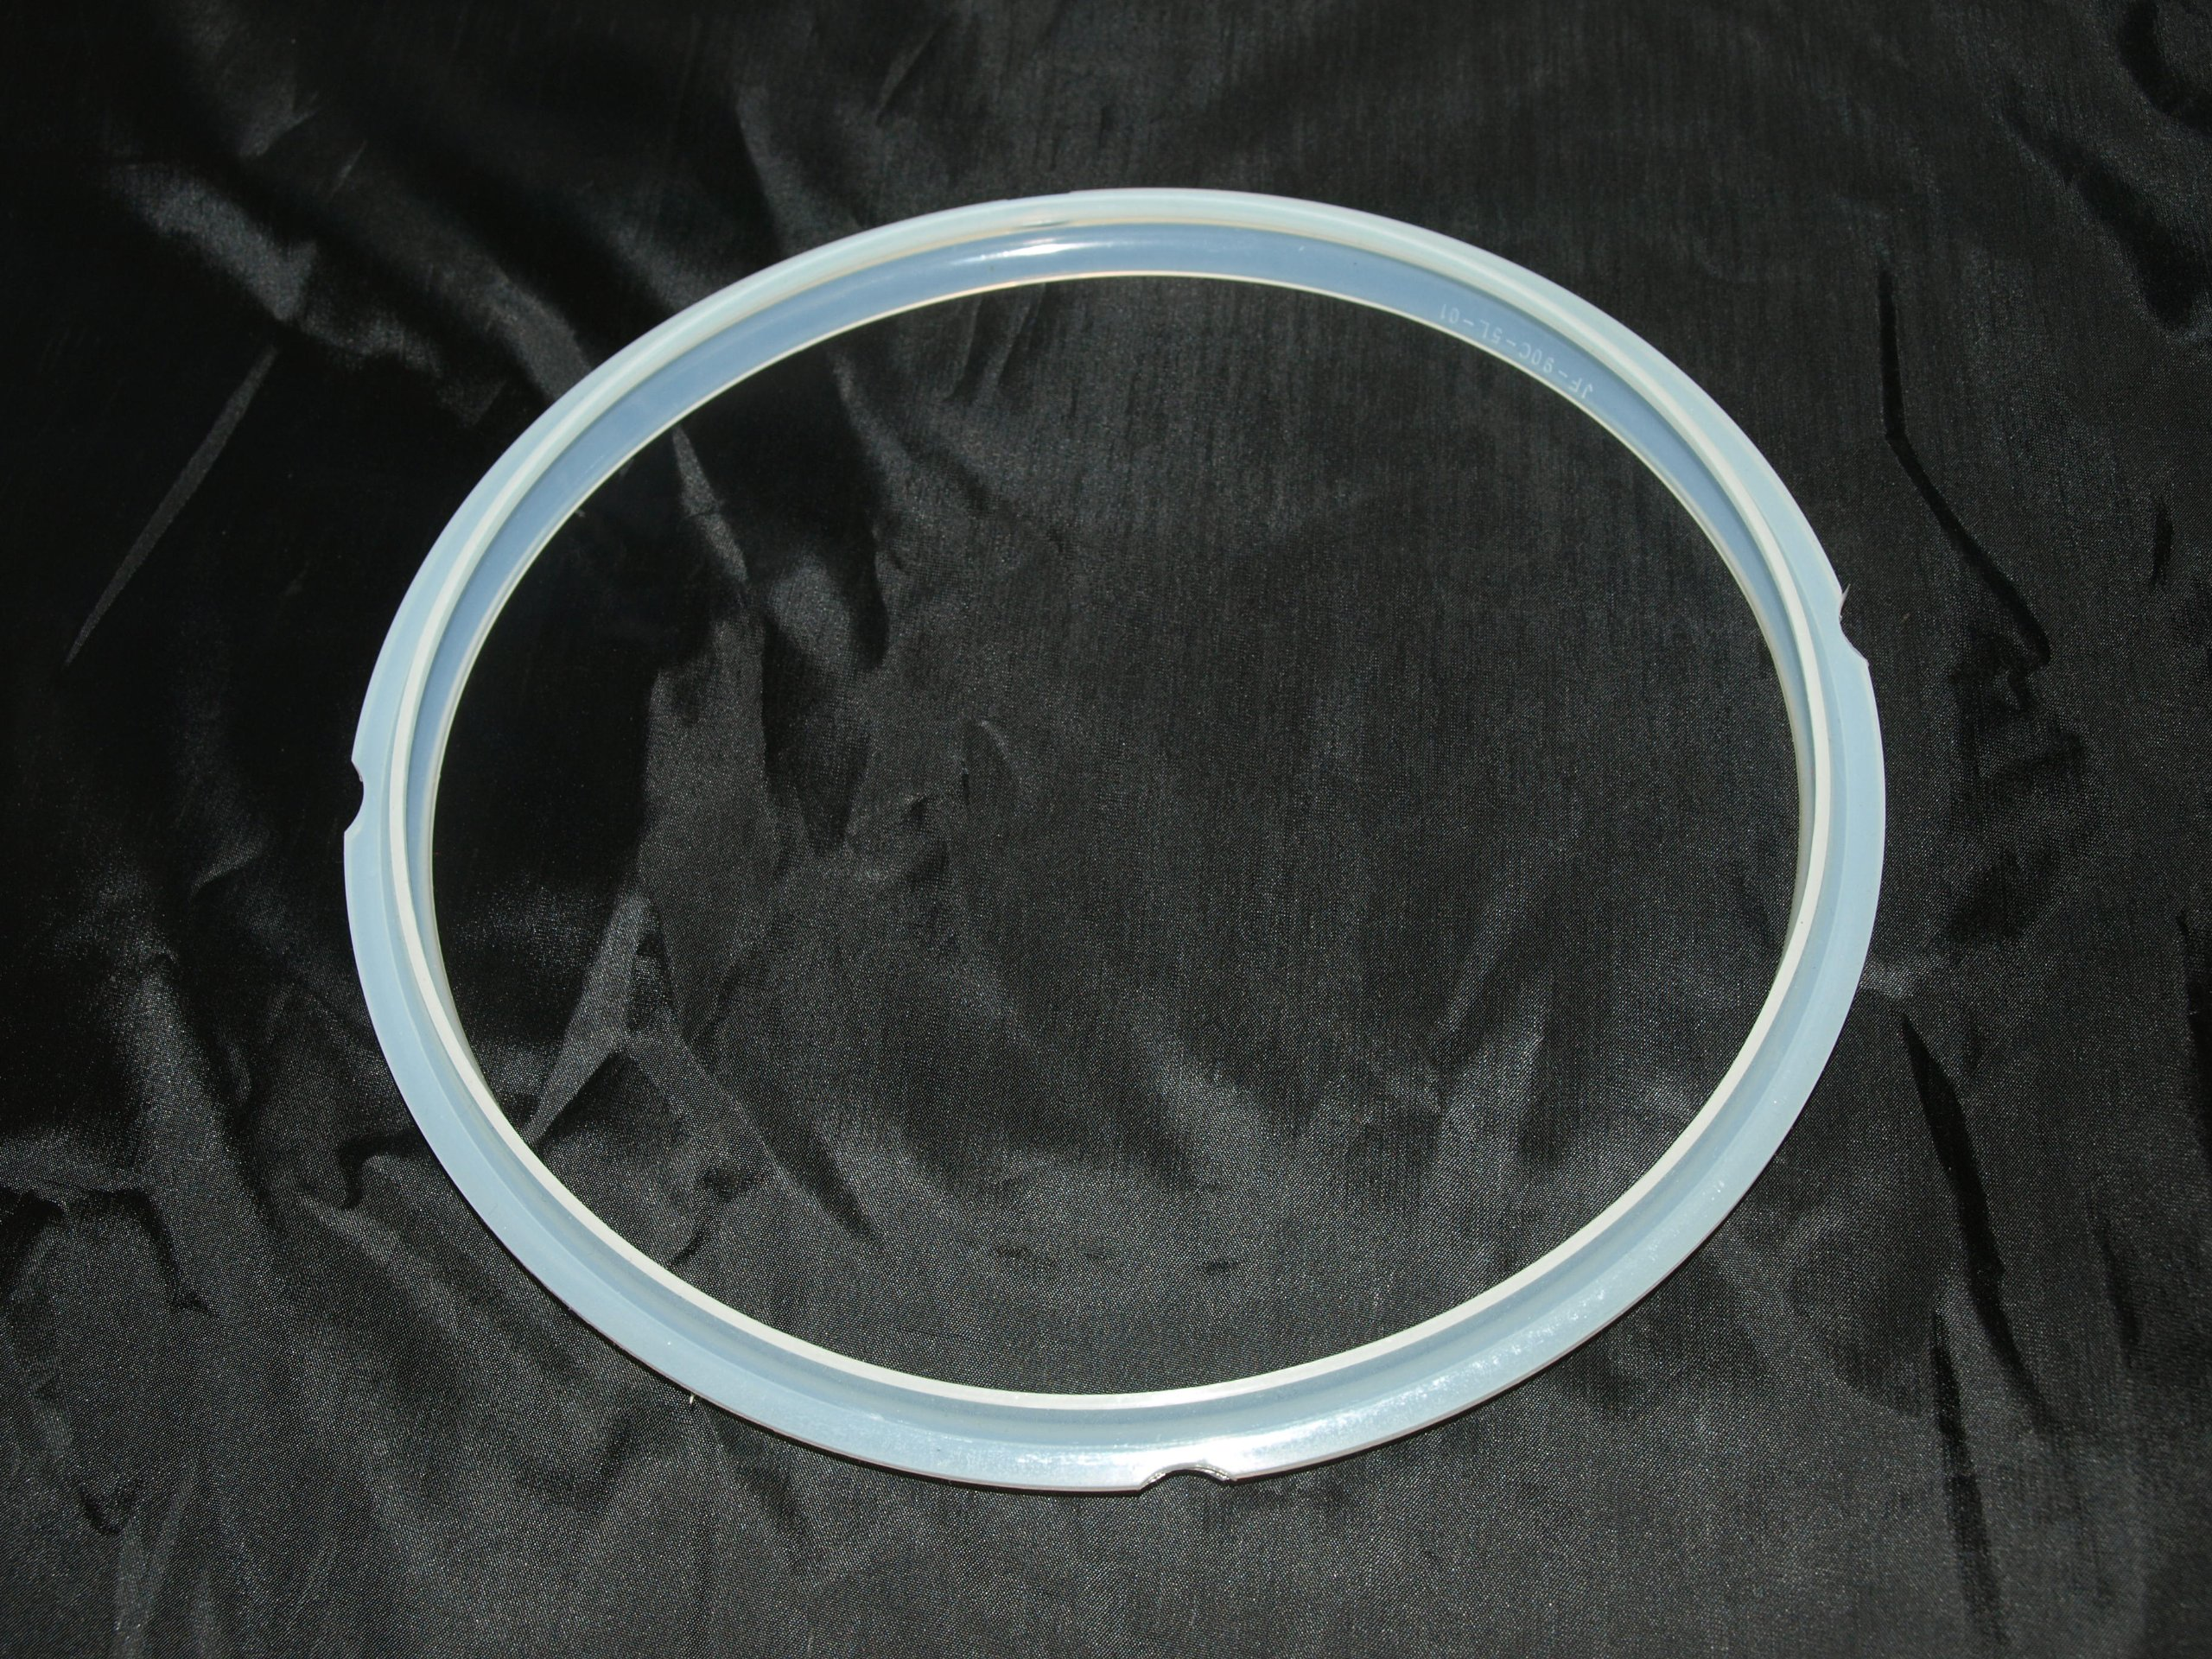 4qt Gowise USA Gw22602RUBBER Electric Pressure Cooker Sealing Ring for Gowise USA 4qt Electric Pressure Cooker Only